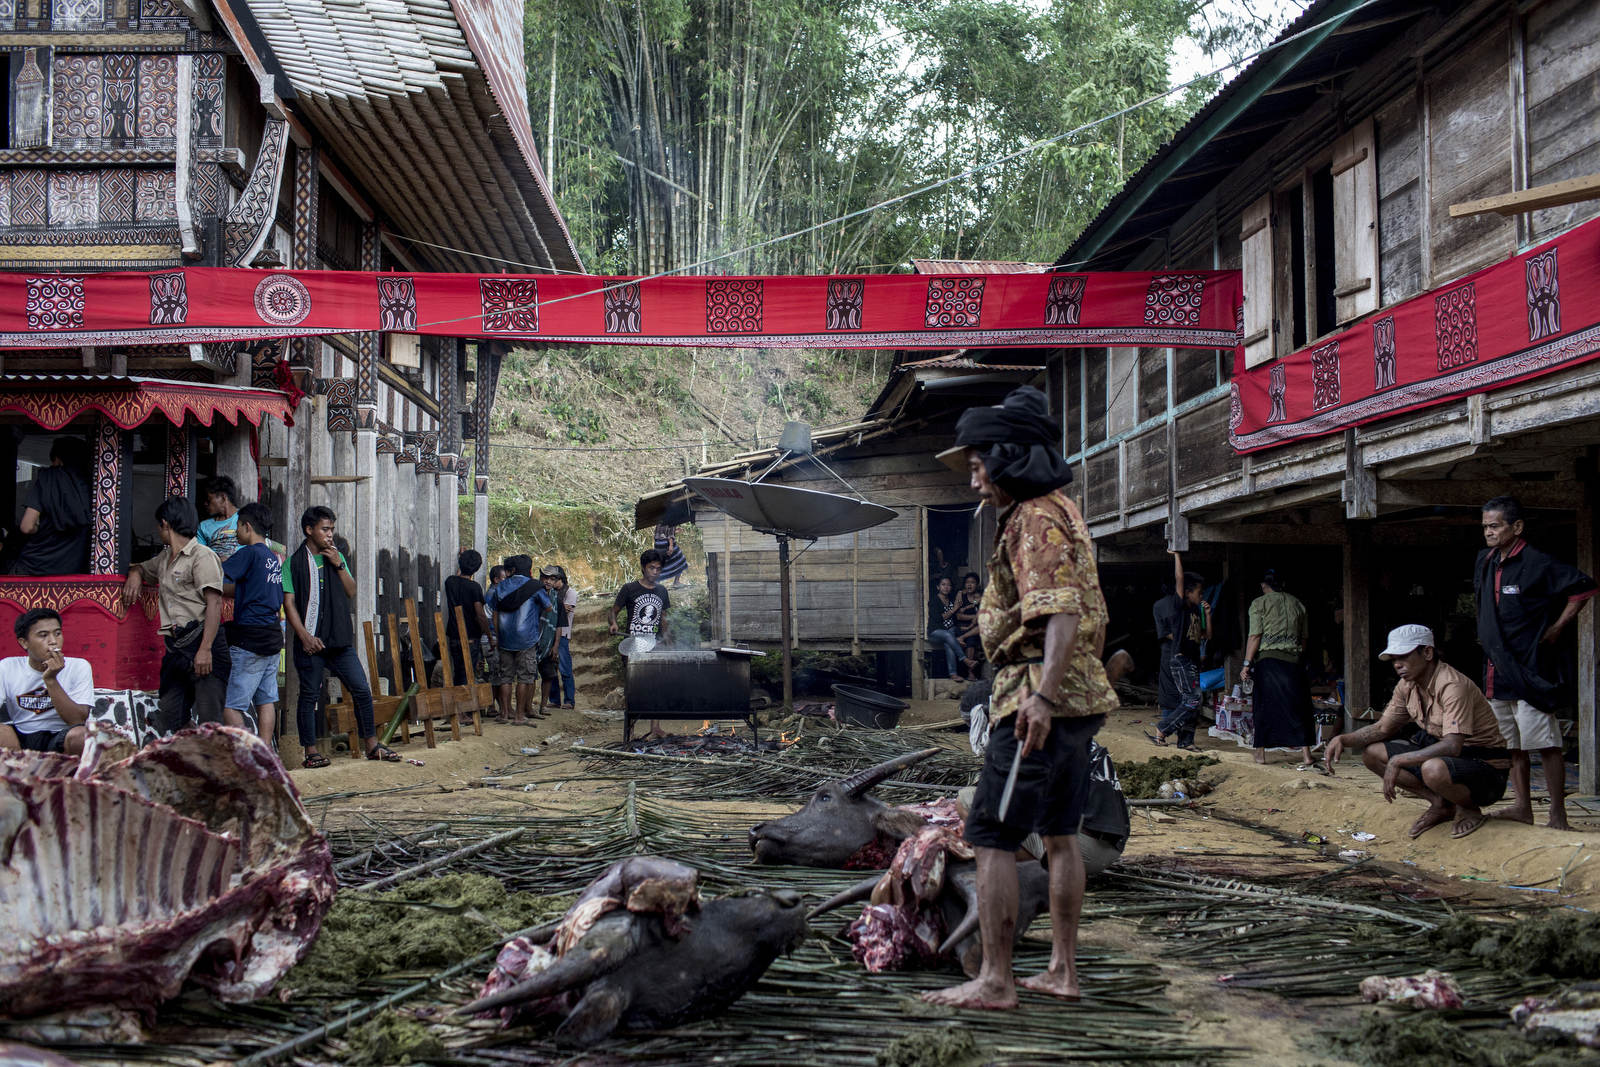 Funerals in Toraja, a remote corner of Sulawesi in eastern Indonesia, often involve many animal sacrifices. Water buffalo are sacrificed to help carry the deceased to the afterlife, and pigs are slaughtered to feed the funeral guests.